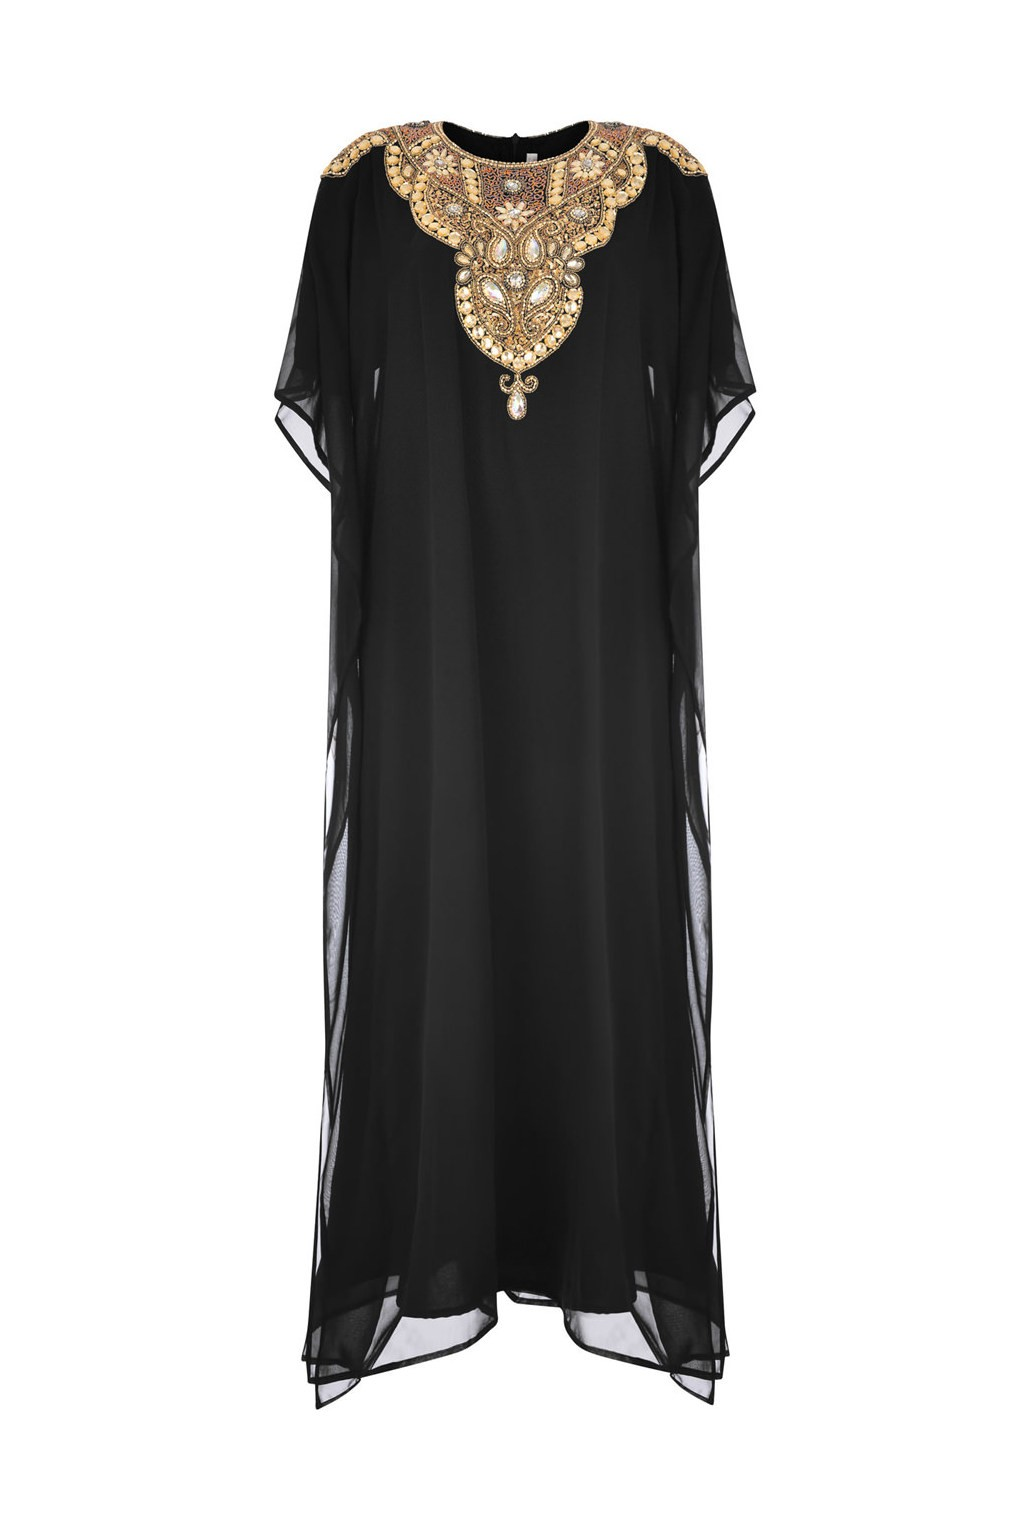 Nafisa Dubai Kaftan Dress Image